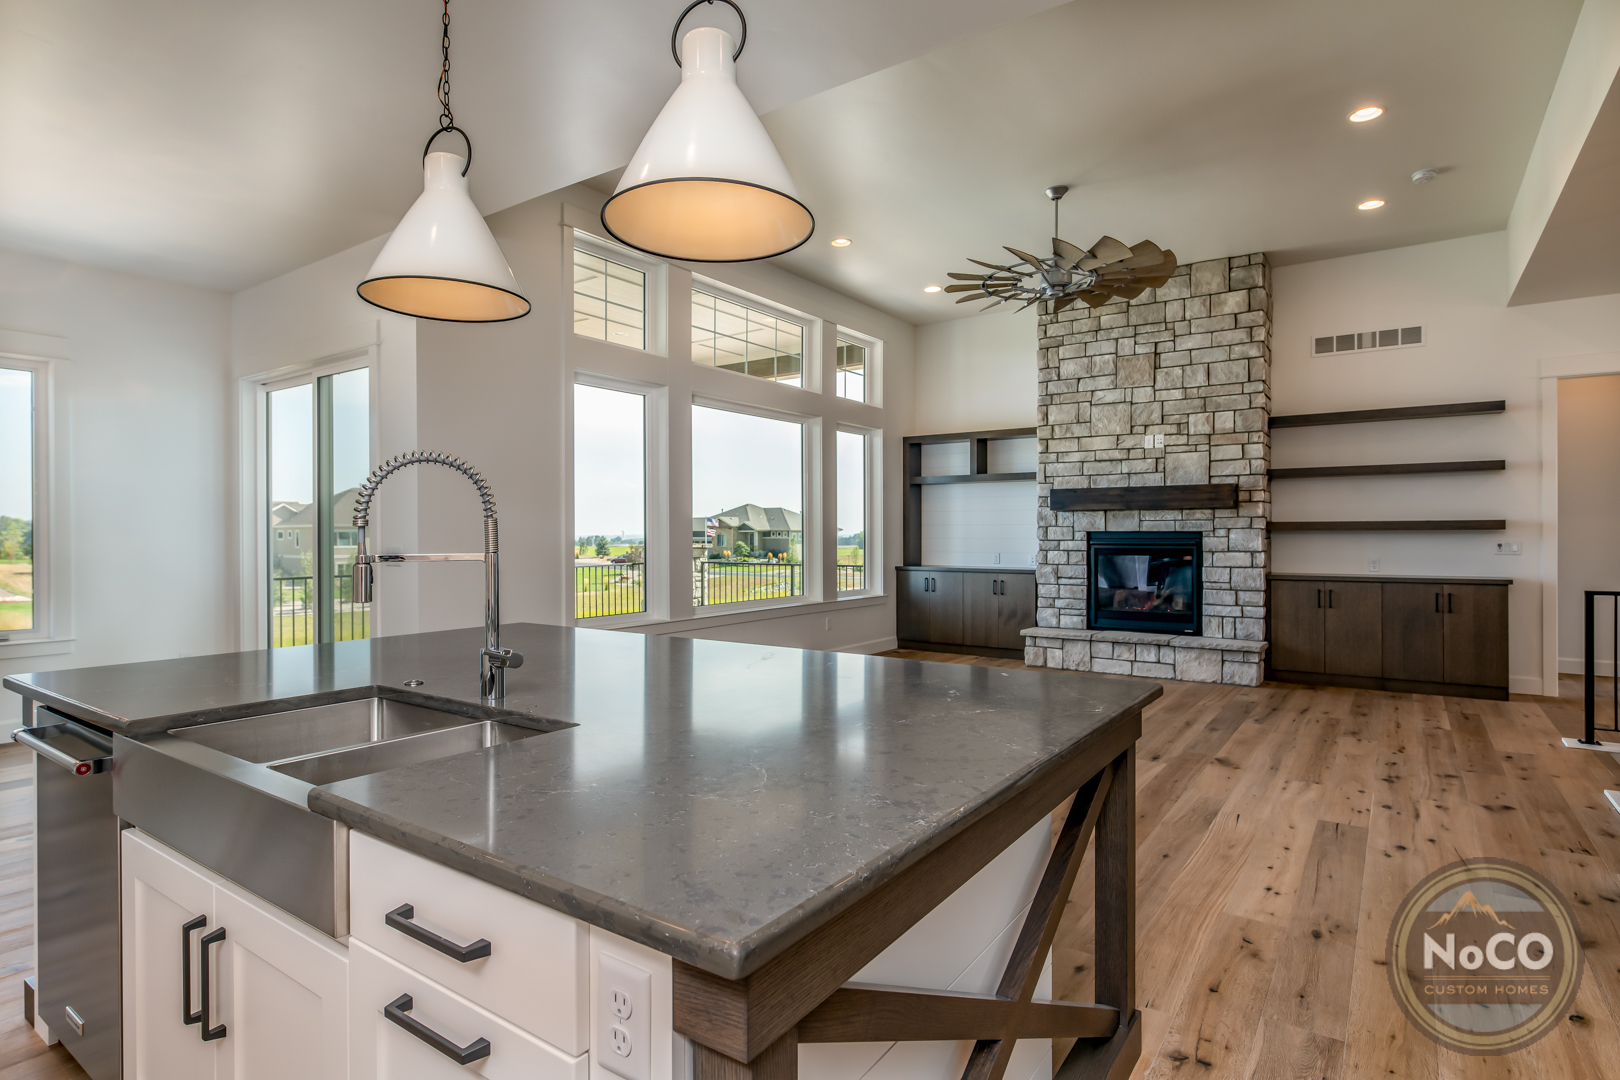 colorado custom home kitchen island